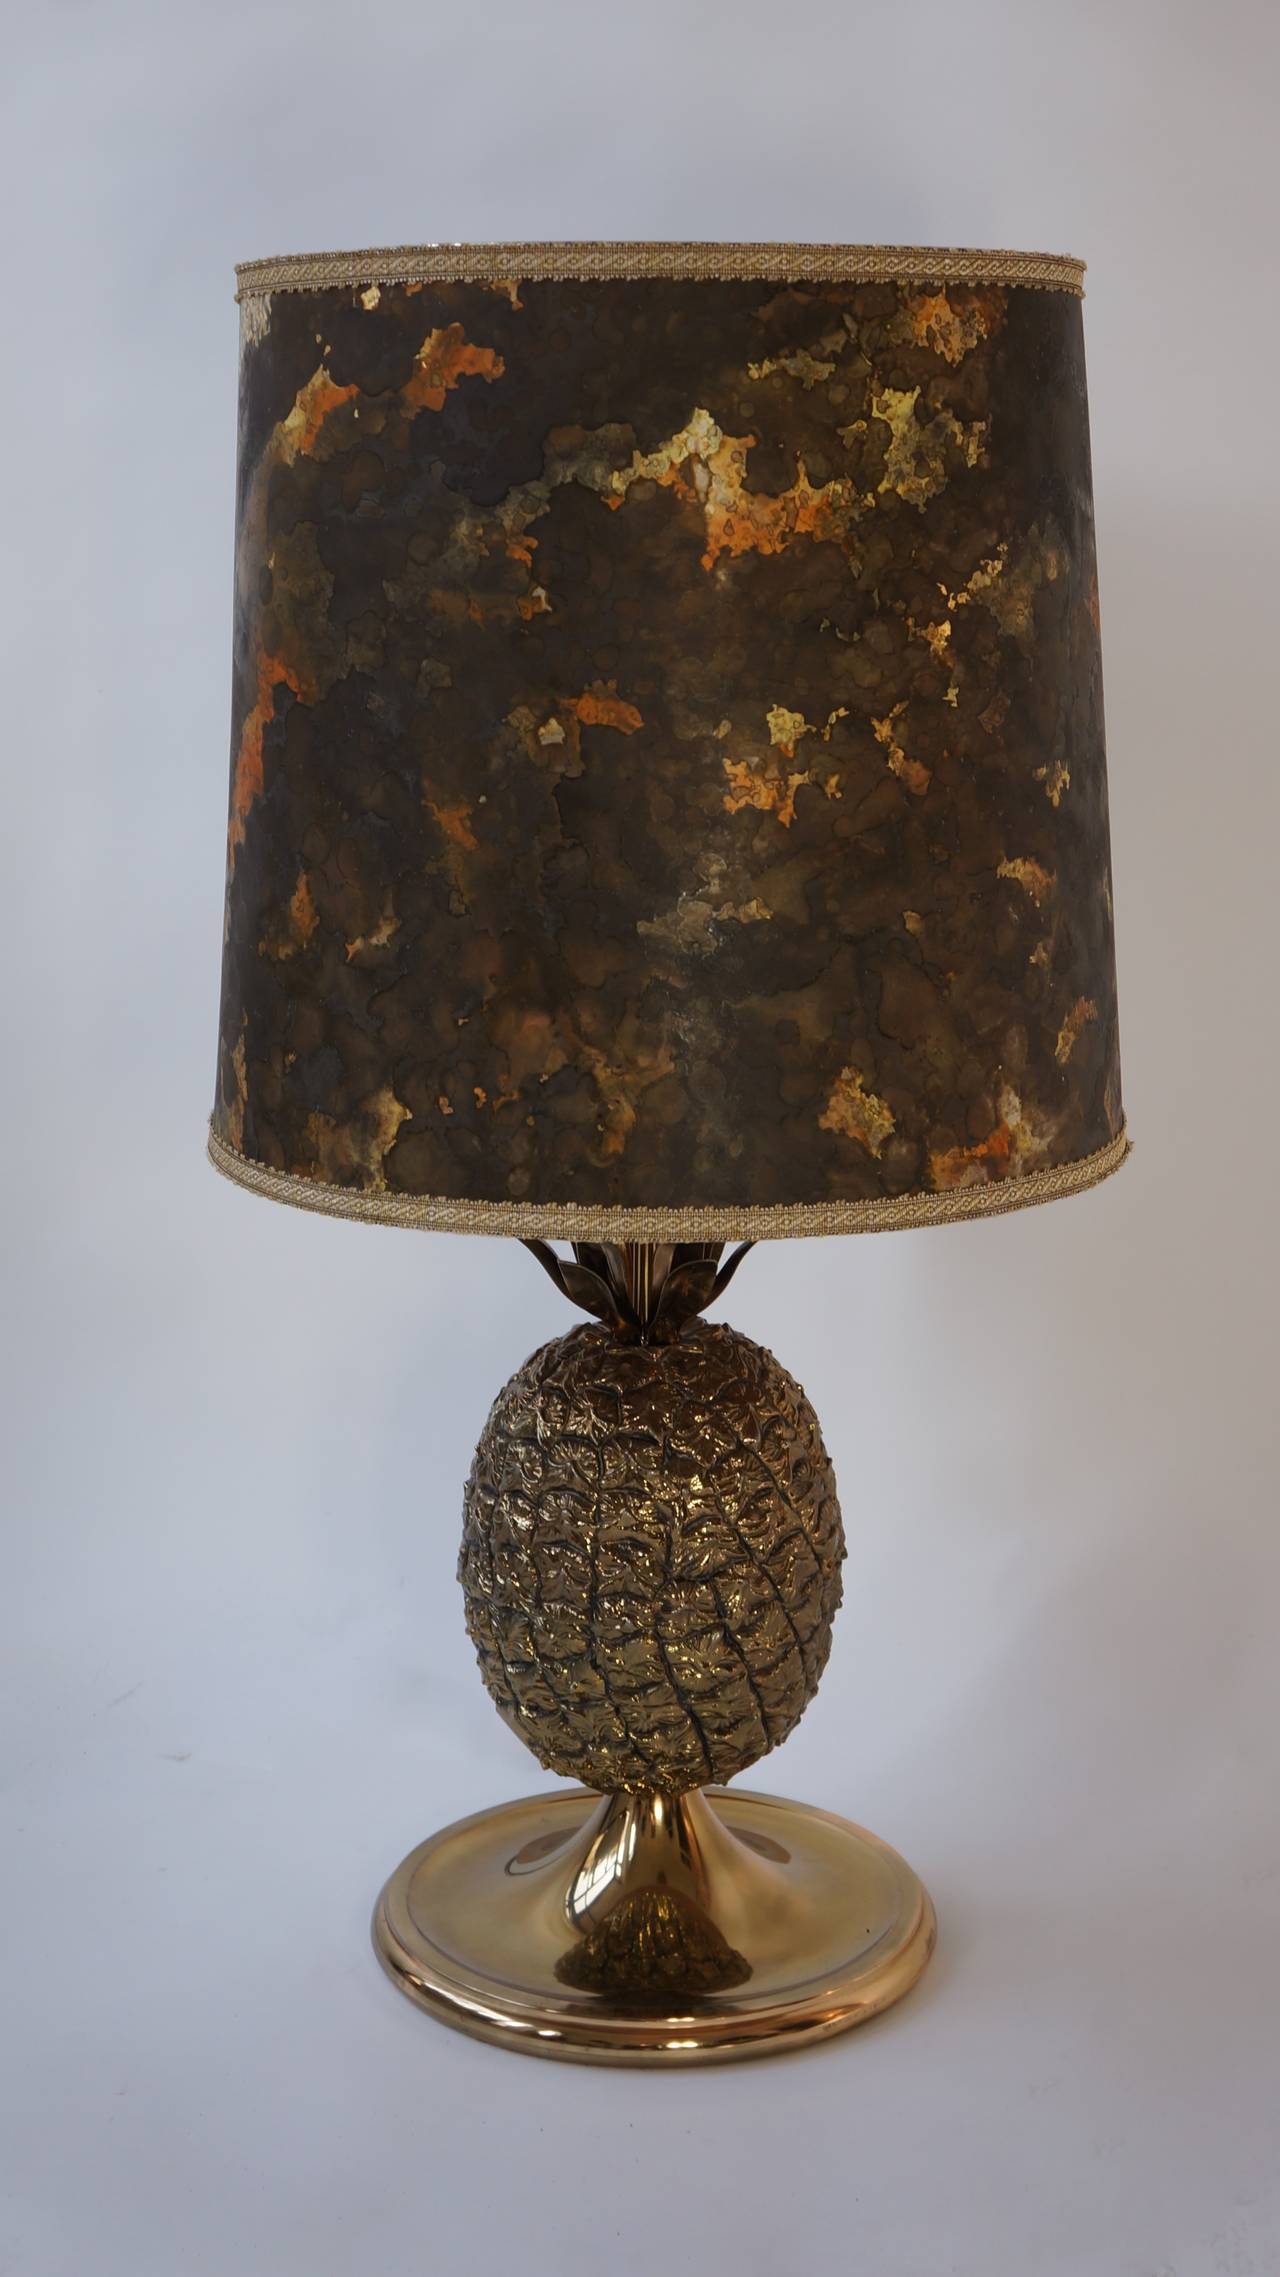 Large Lamps For Sale Beautiful Large Pineapple Table Lamp For Sale At 1stdibs